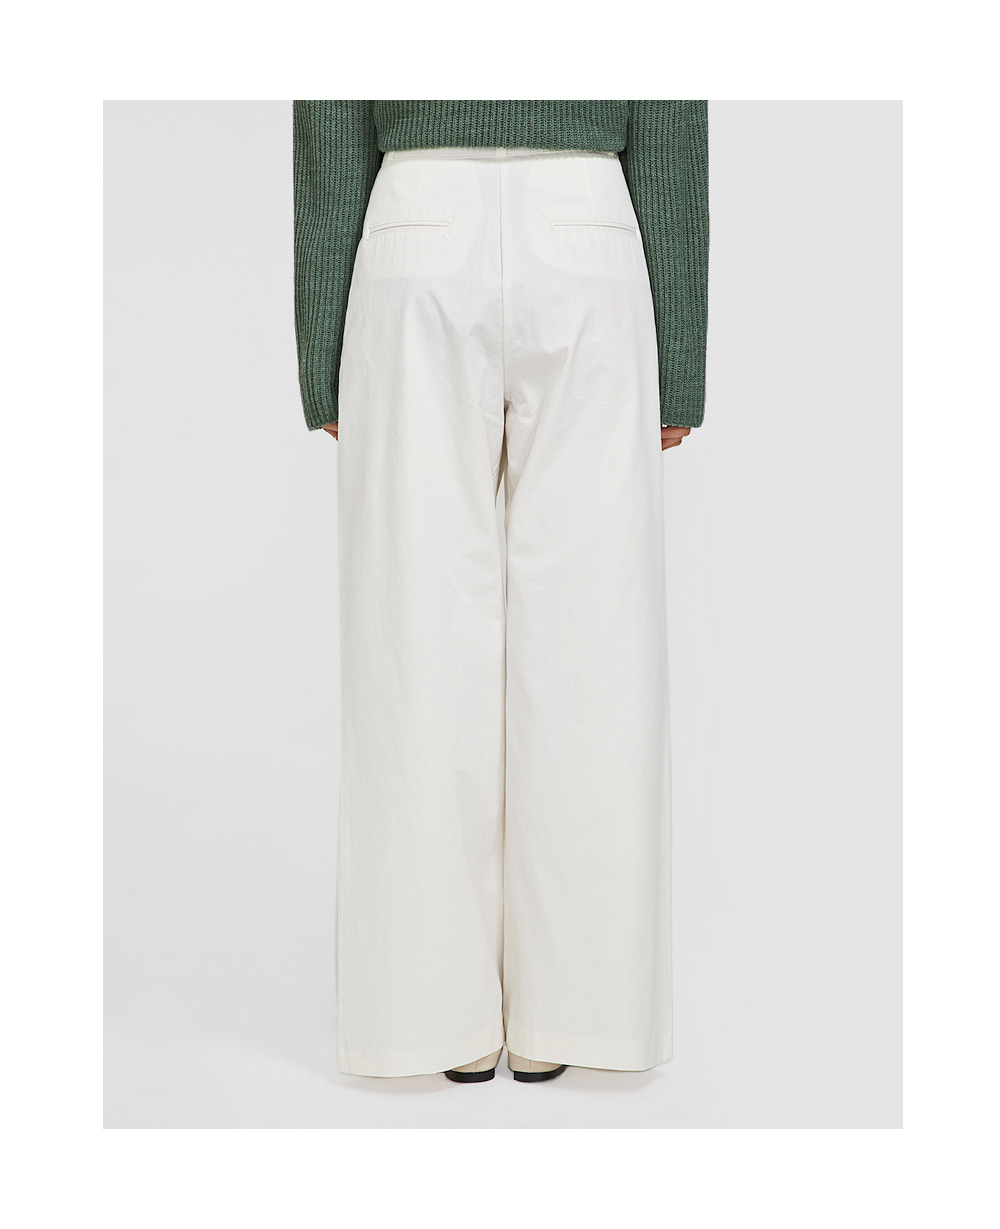 real wide cotton slacks (s, m)